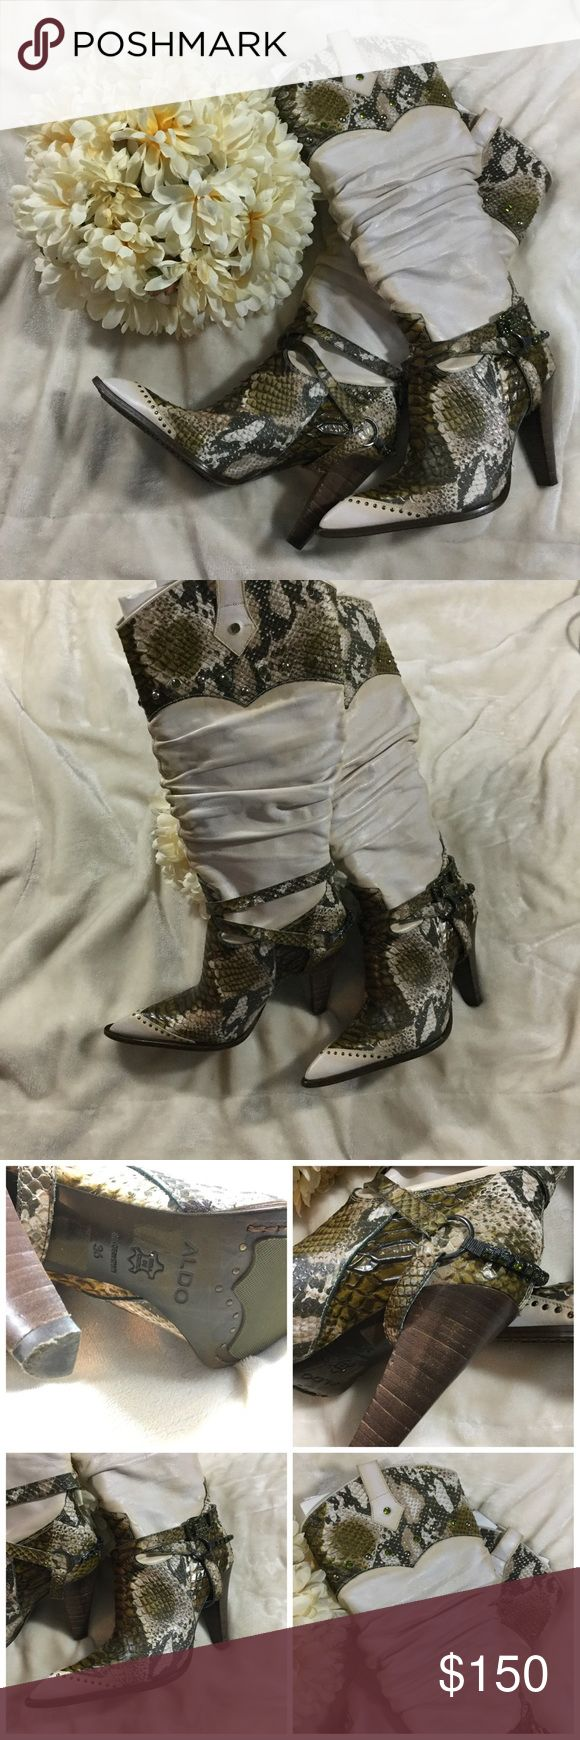 🔥🔥Aldo Edelin Bling Cowboy Boot size (36) 6 Aldo Edelin-32 Green Bling snake skin print cream/ivory cowboy boots GREAT CONDITION /Leather and comes with bottom heel replacements Aldo Shoes Heeled Boots